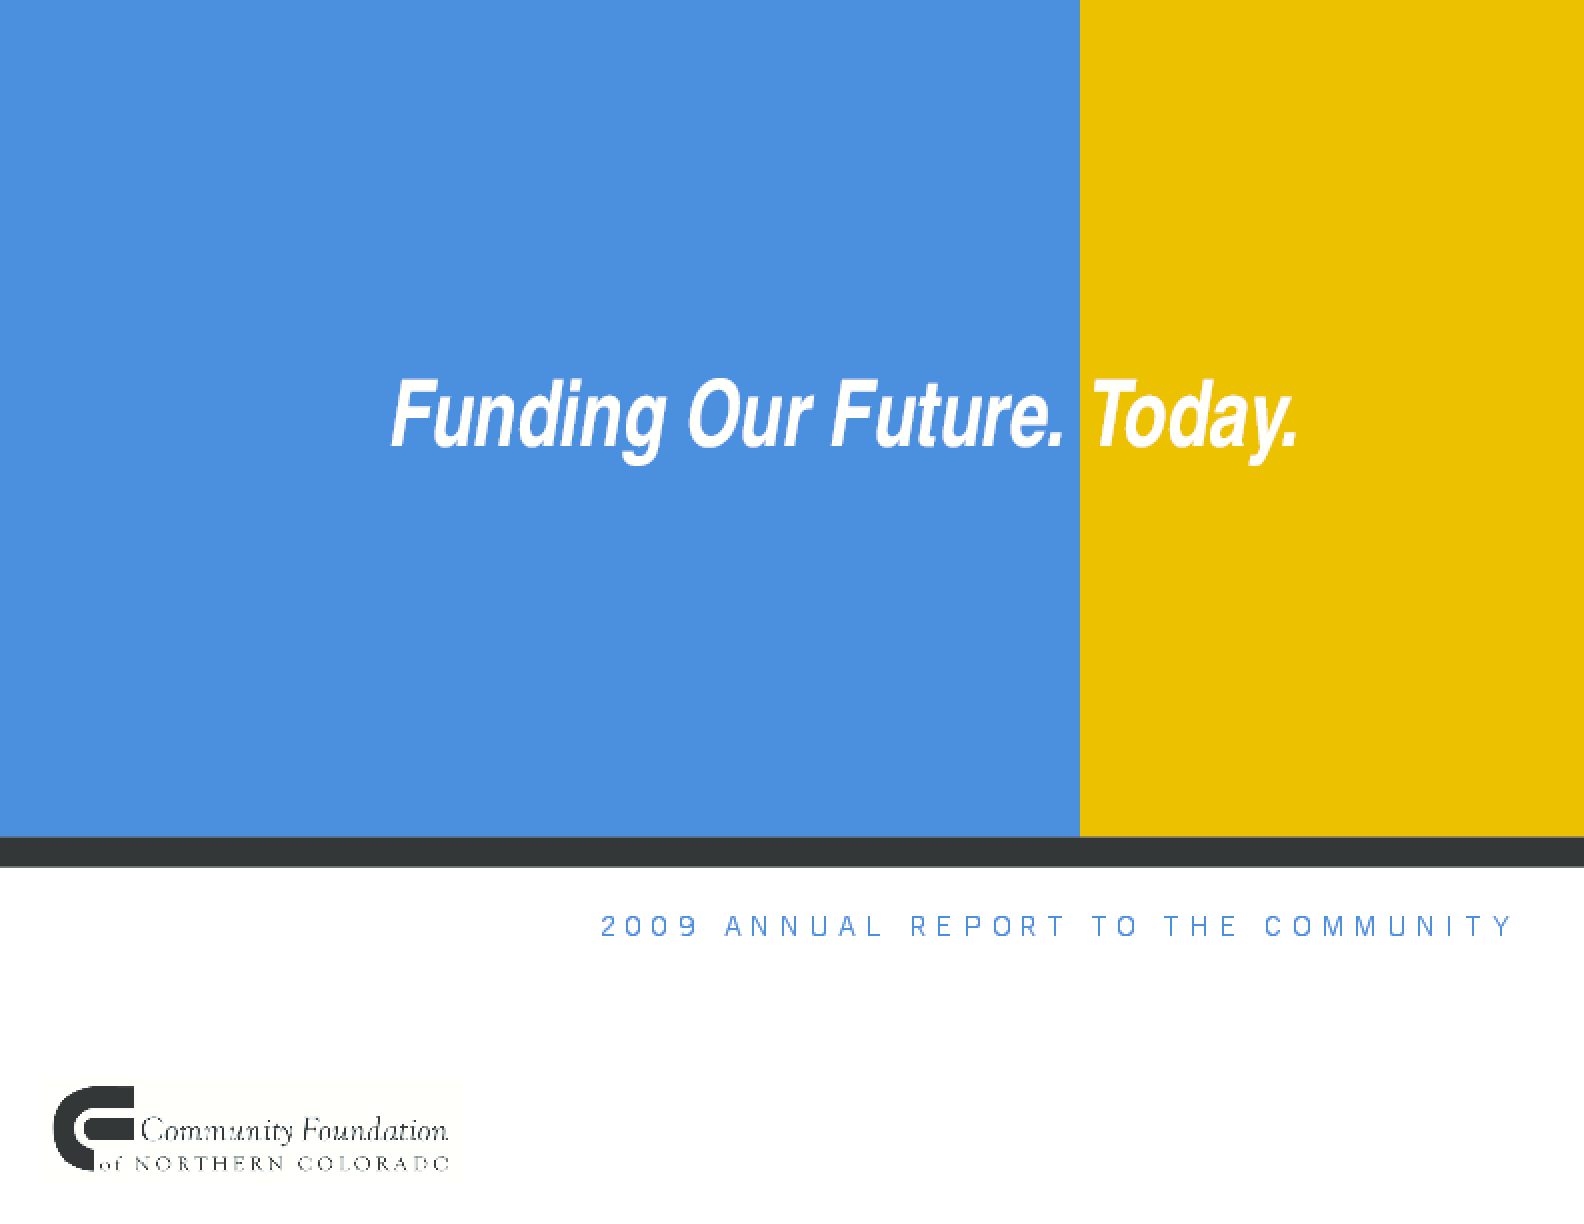 Community Foundation of Northern Colorado - 2009 Annual Report